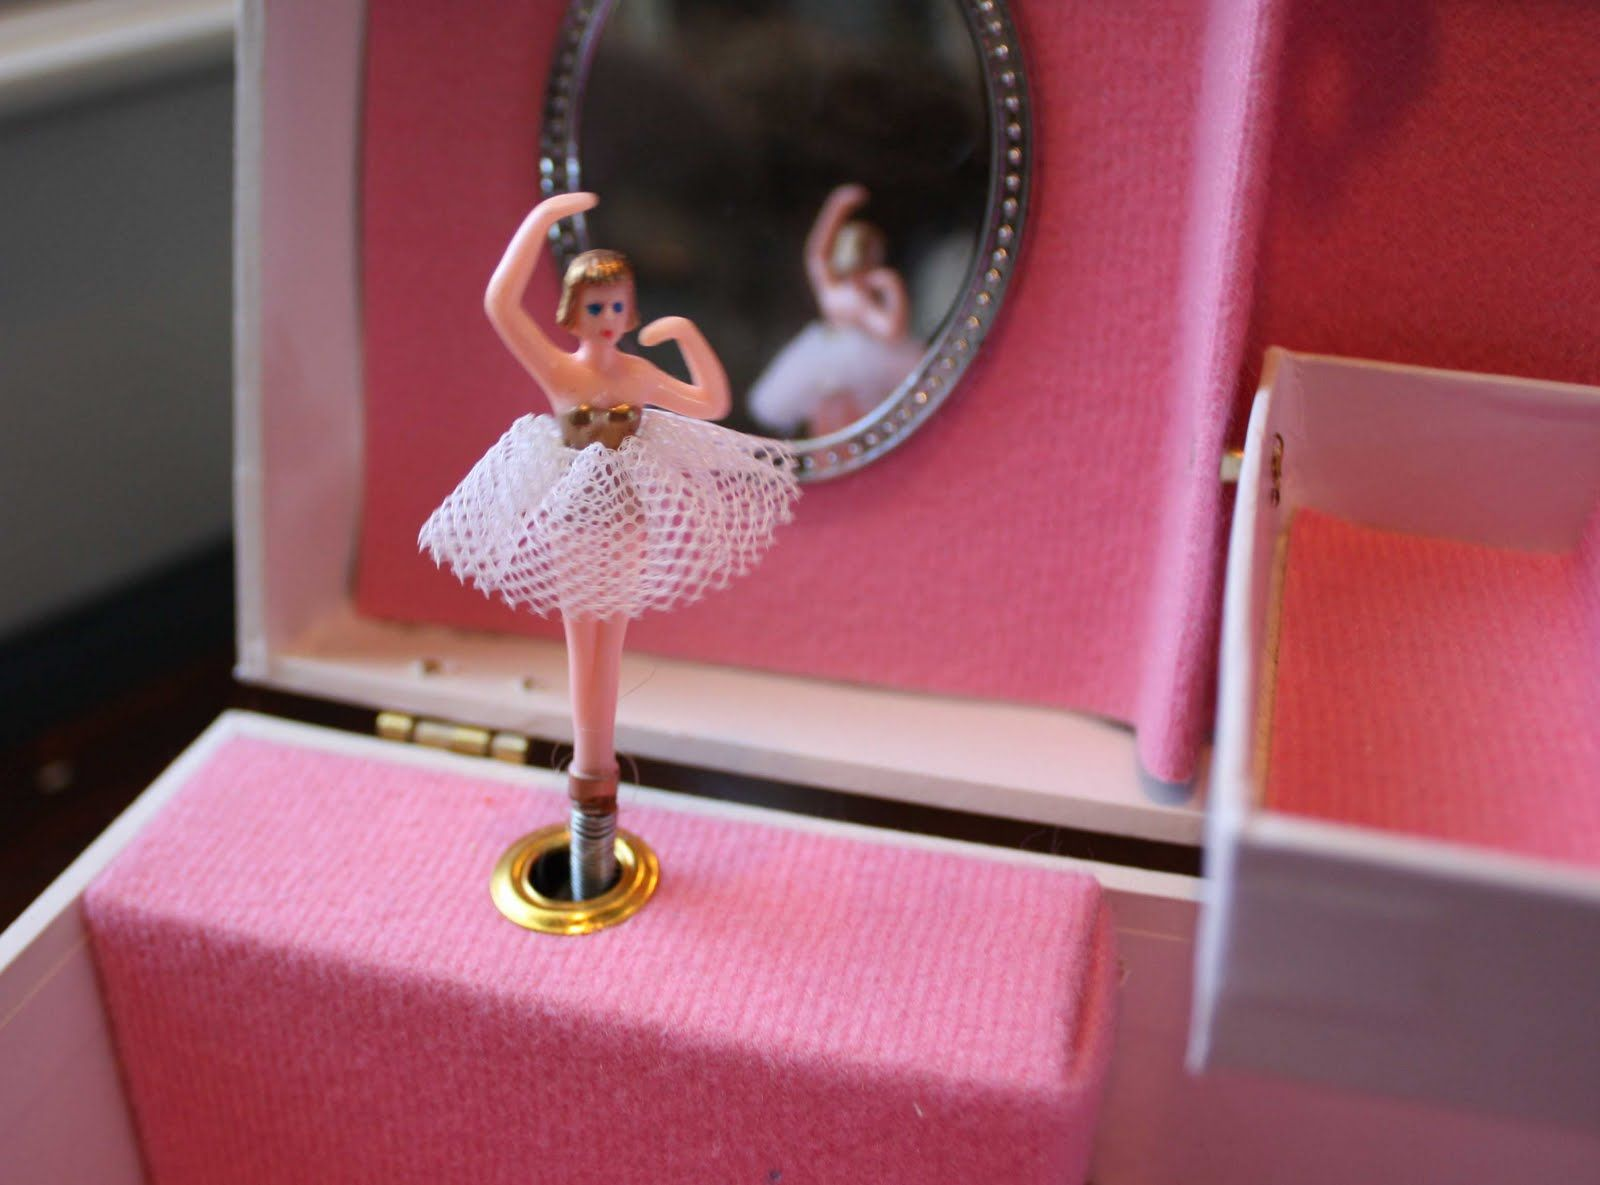 Dont be a ballerina in a box who dances for approval Dance to